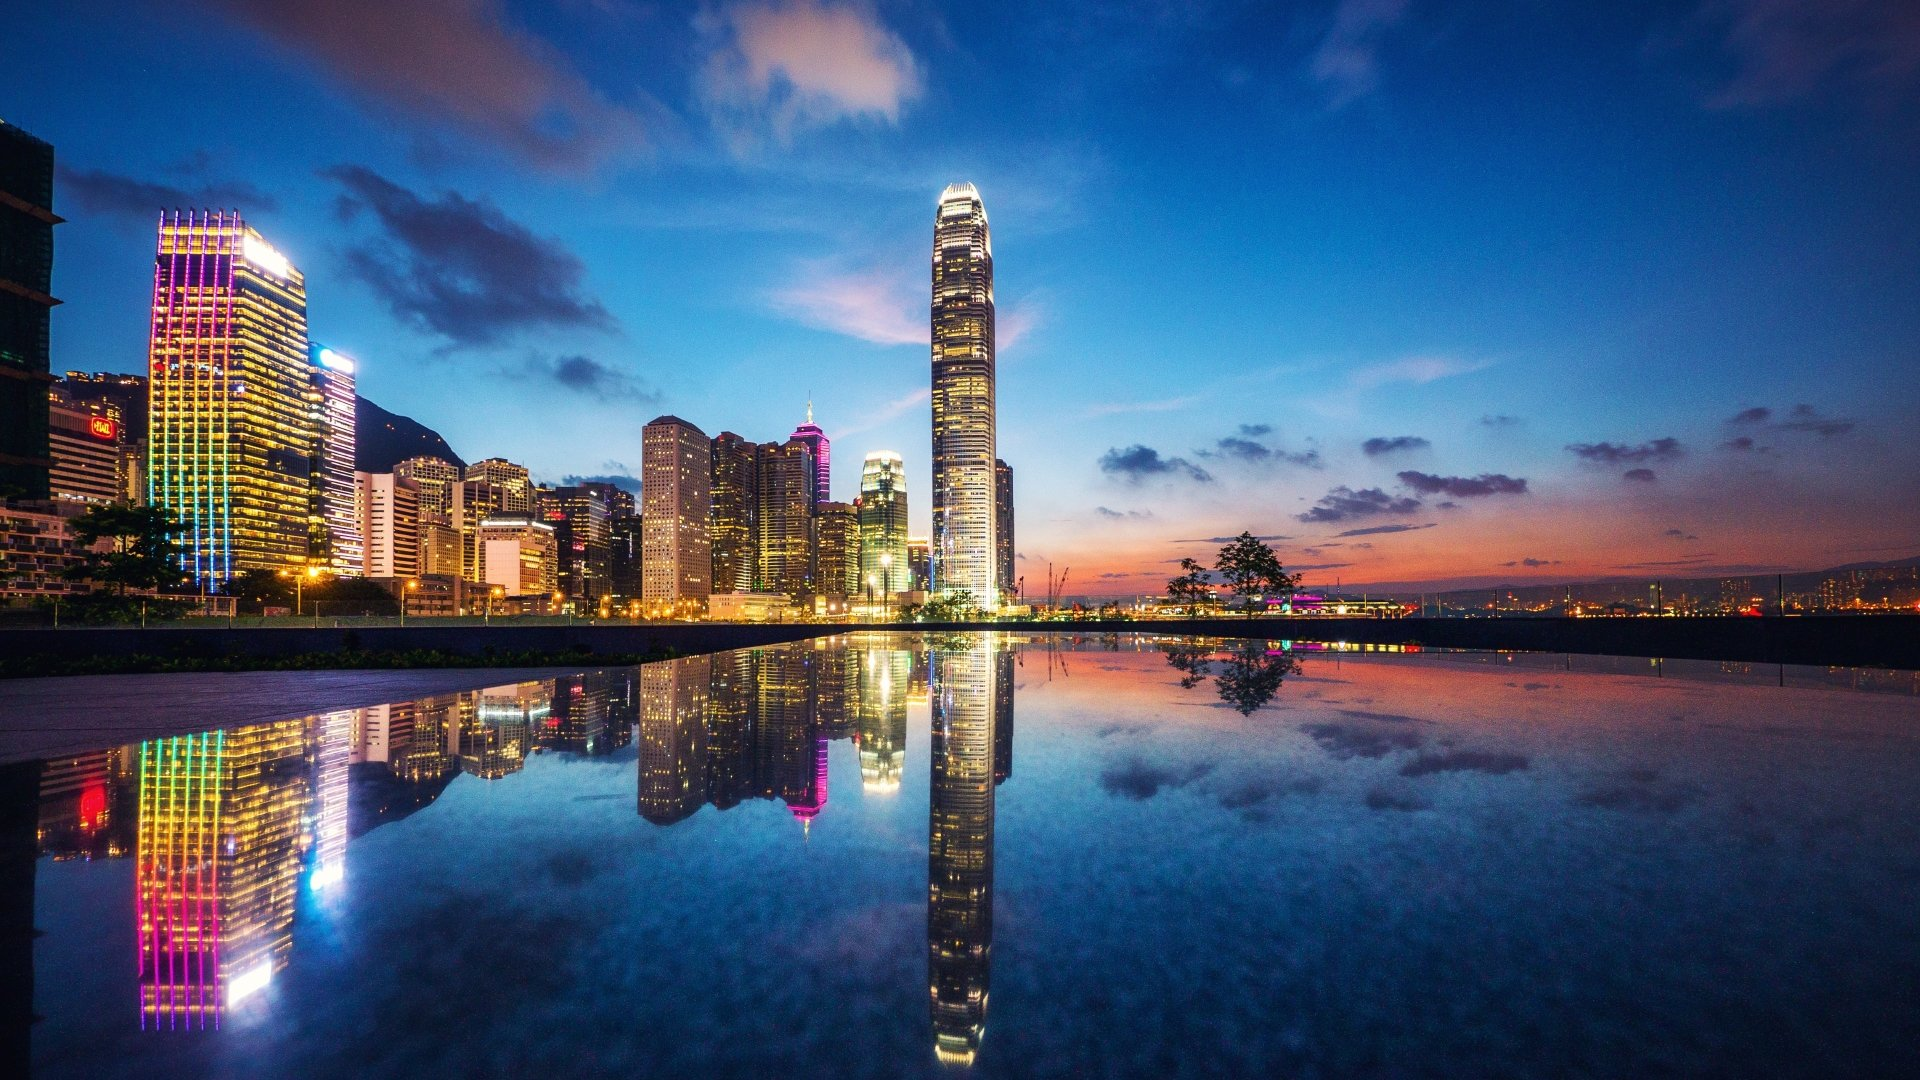 Man Made - Hong Kong  Cityscape Twilight Building Reflection Architecture Wallpaper